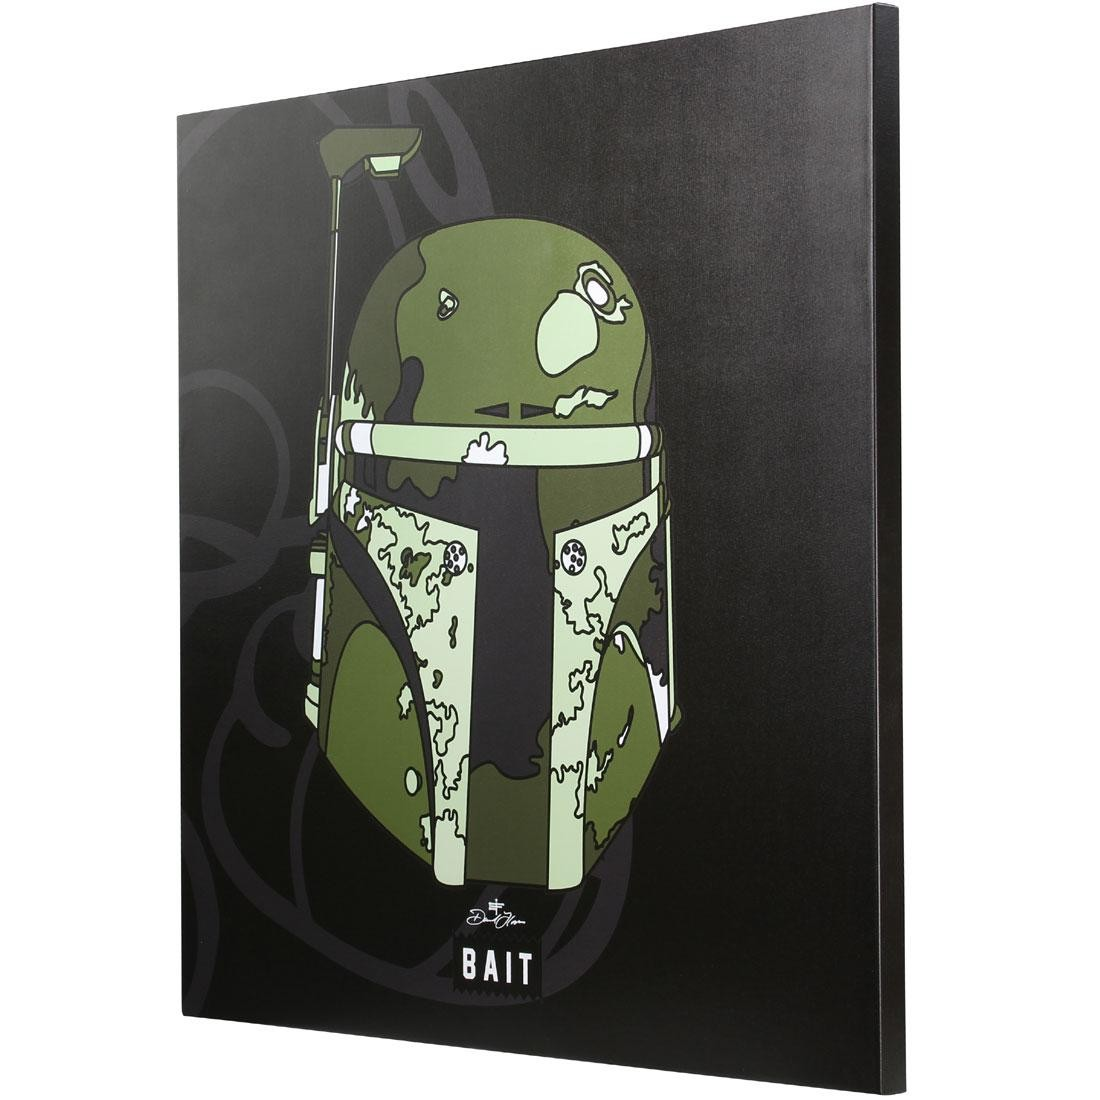 BAIT x David Flores Star Wars 36 Inch Canvas - Boba Fett (black)